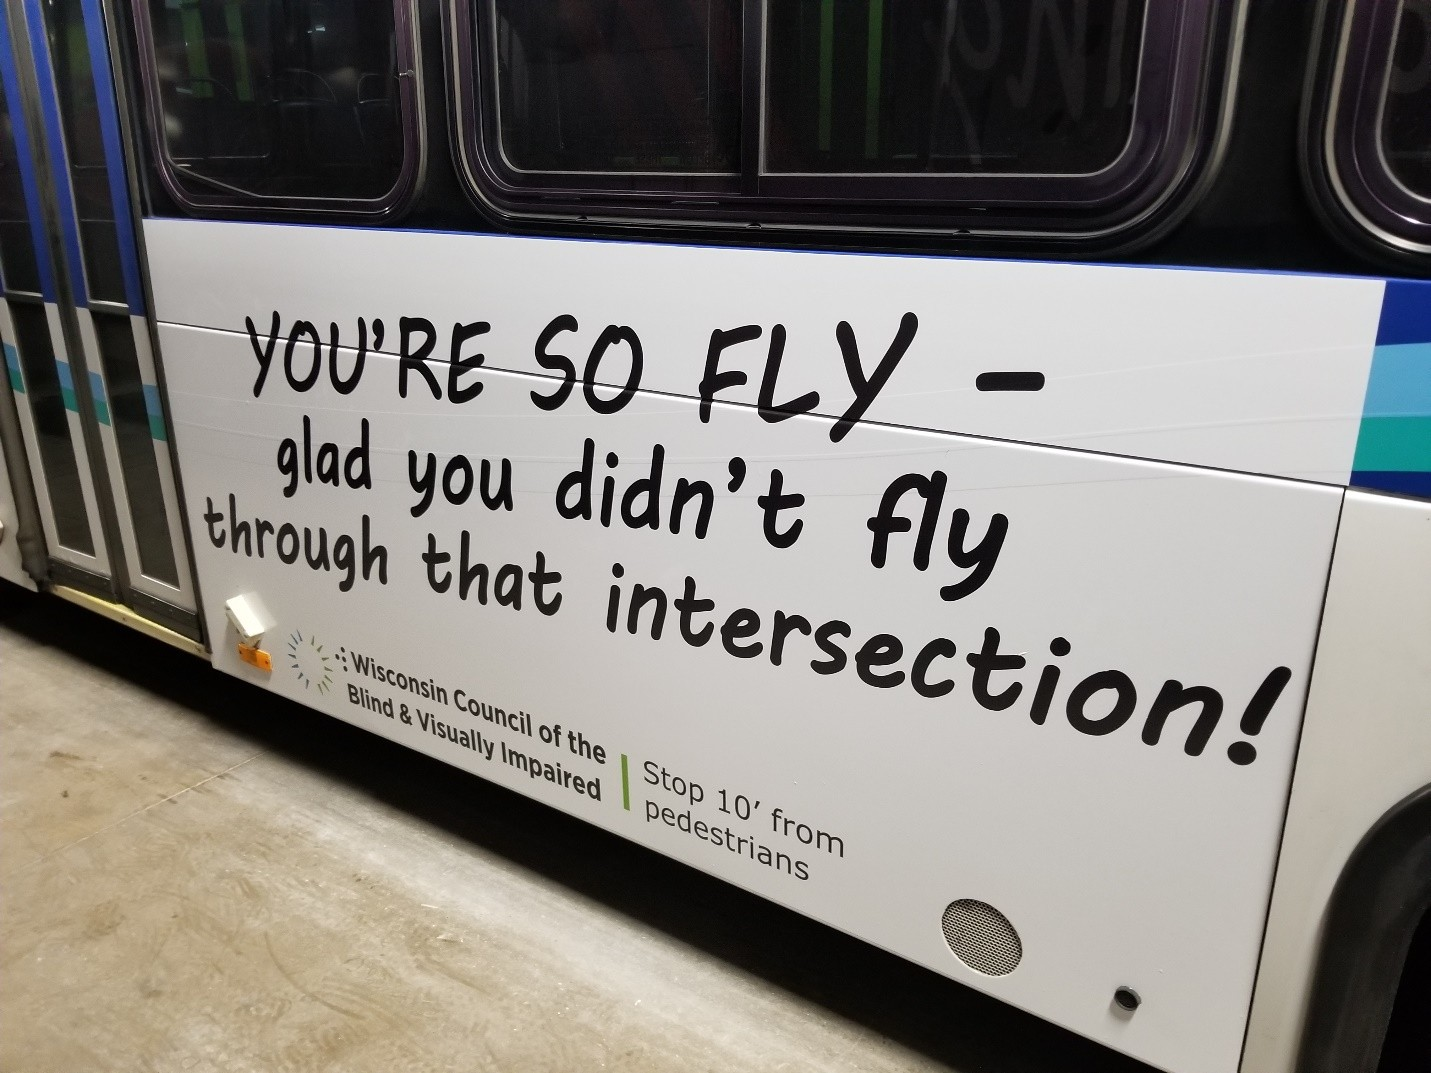 One of the Council's ads on a bus in La Crosse.